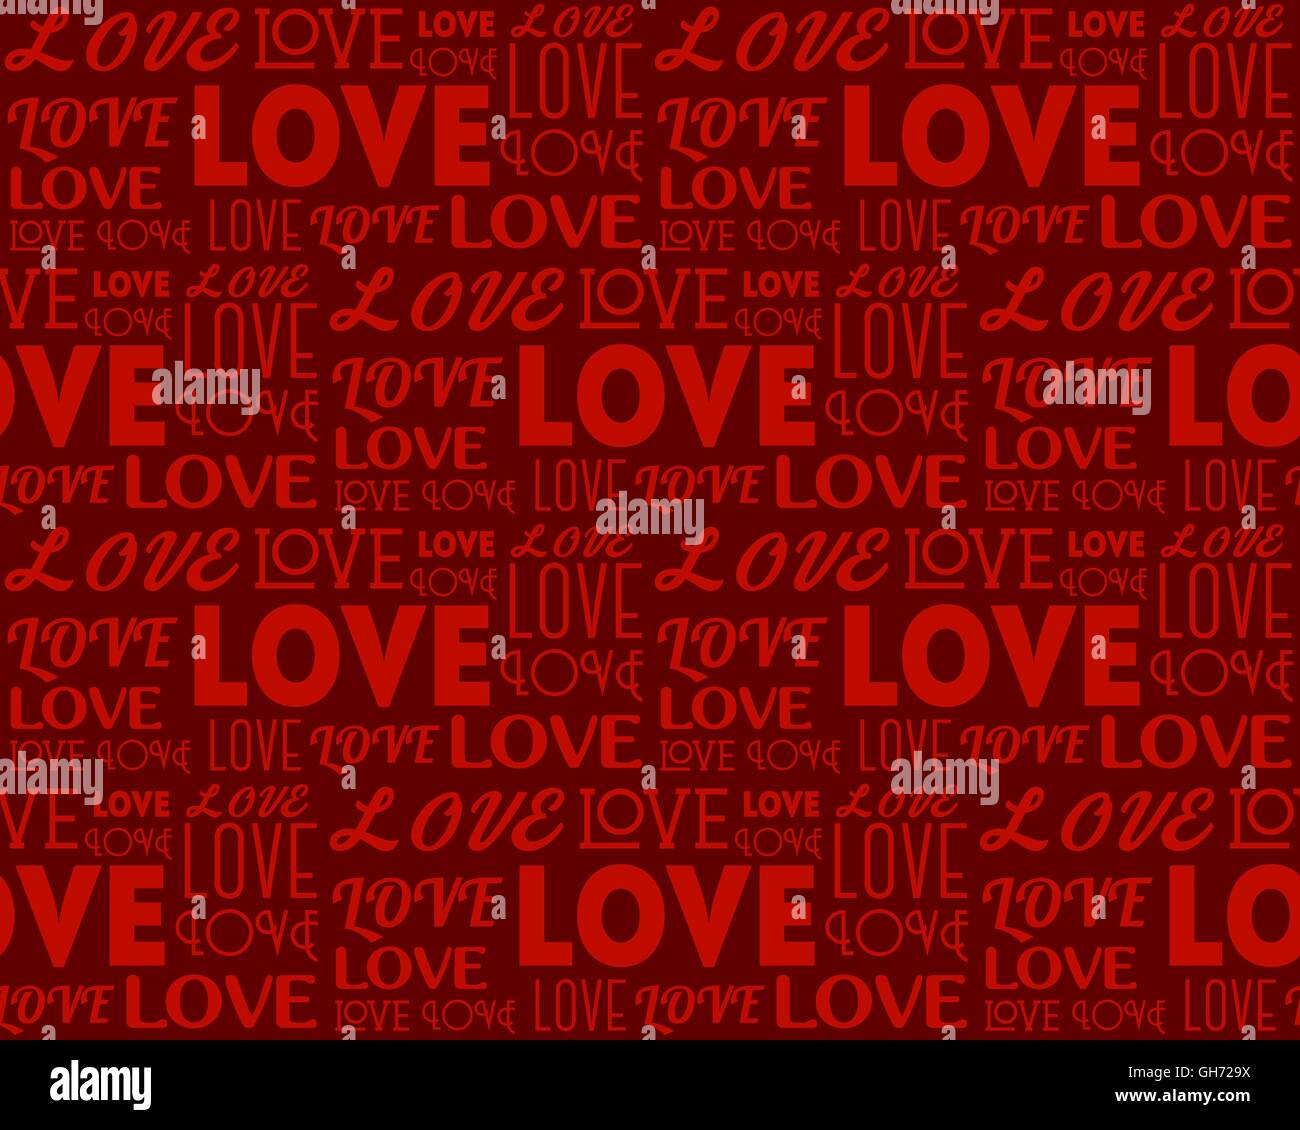 Repeating word Love in different fonts  Seamless background Stock